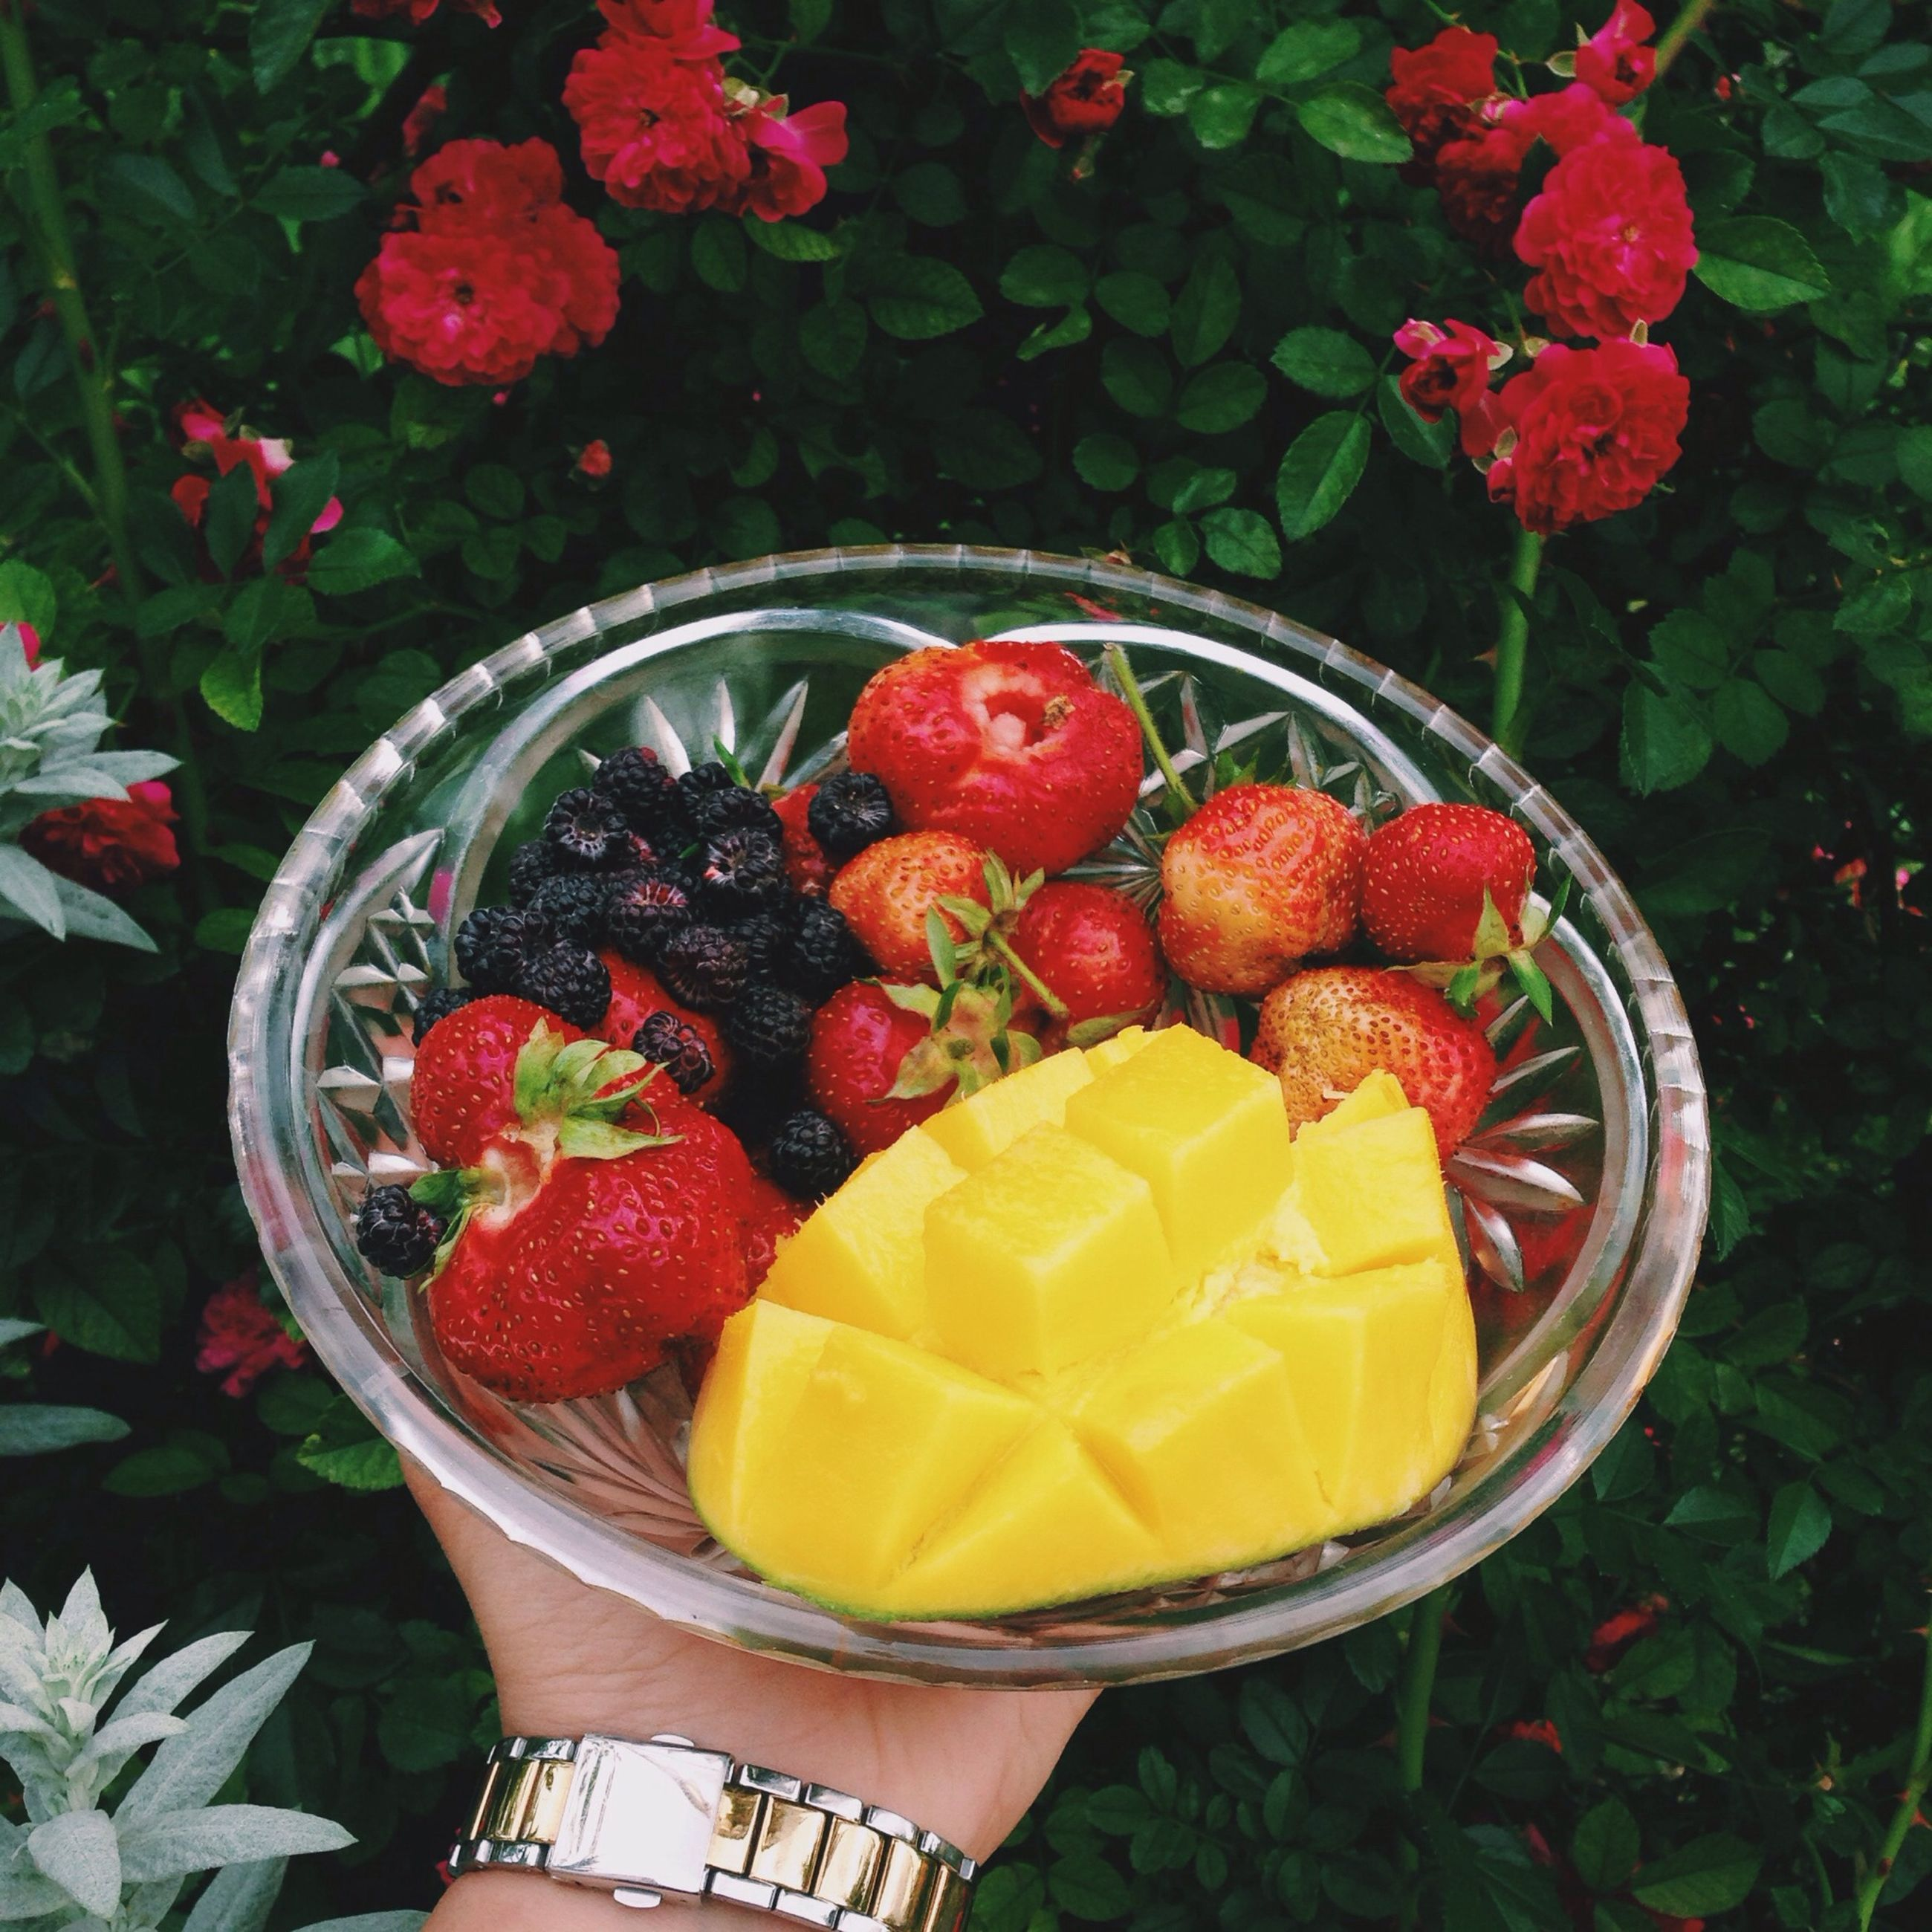 food and drink, food, freshness, fruit, holding, healthy eating, person, lifestyles, strawberry, red, leisure activity, personal perspective, unrecognizable person, high angle view, part of, ripe